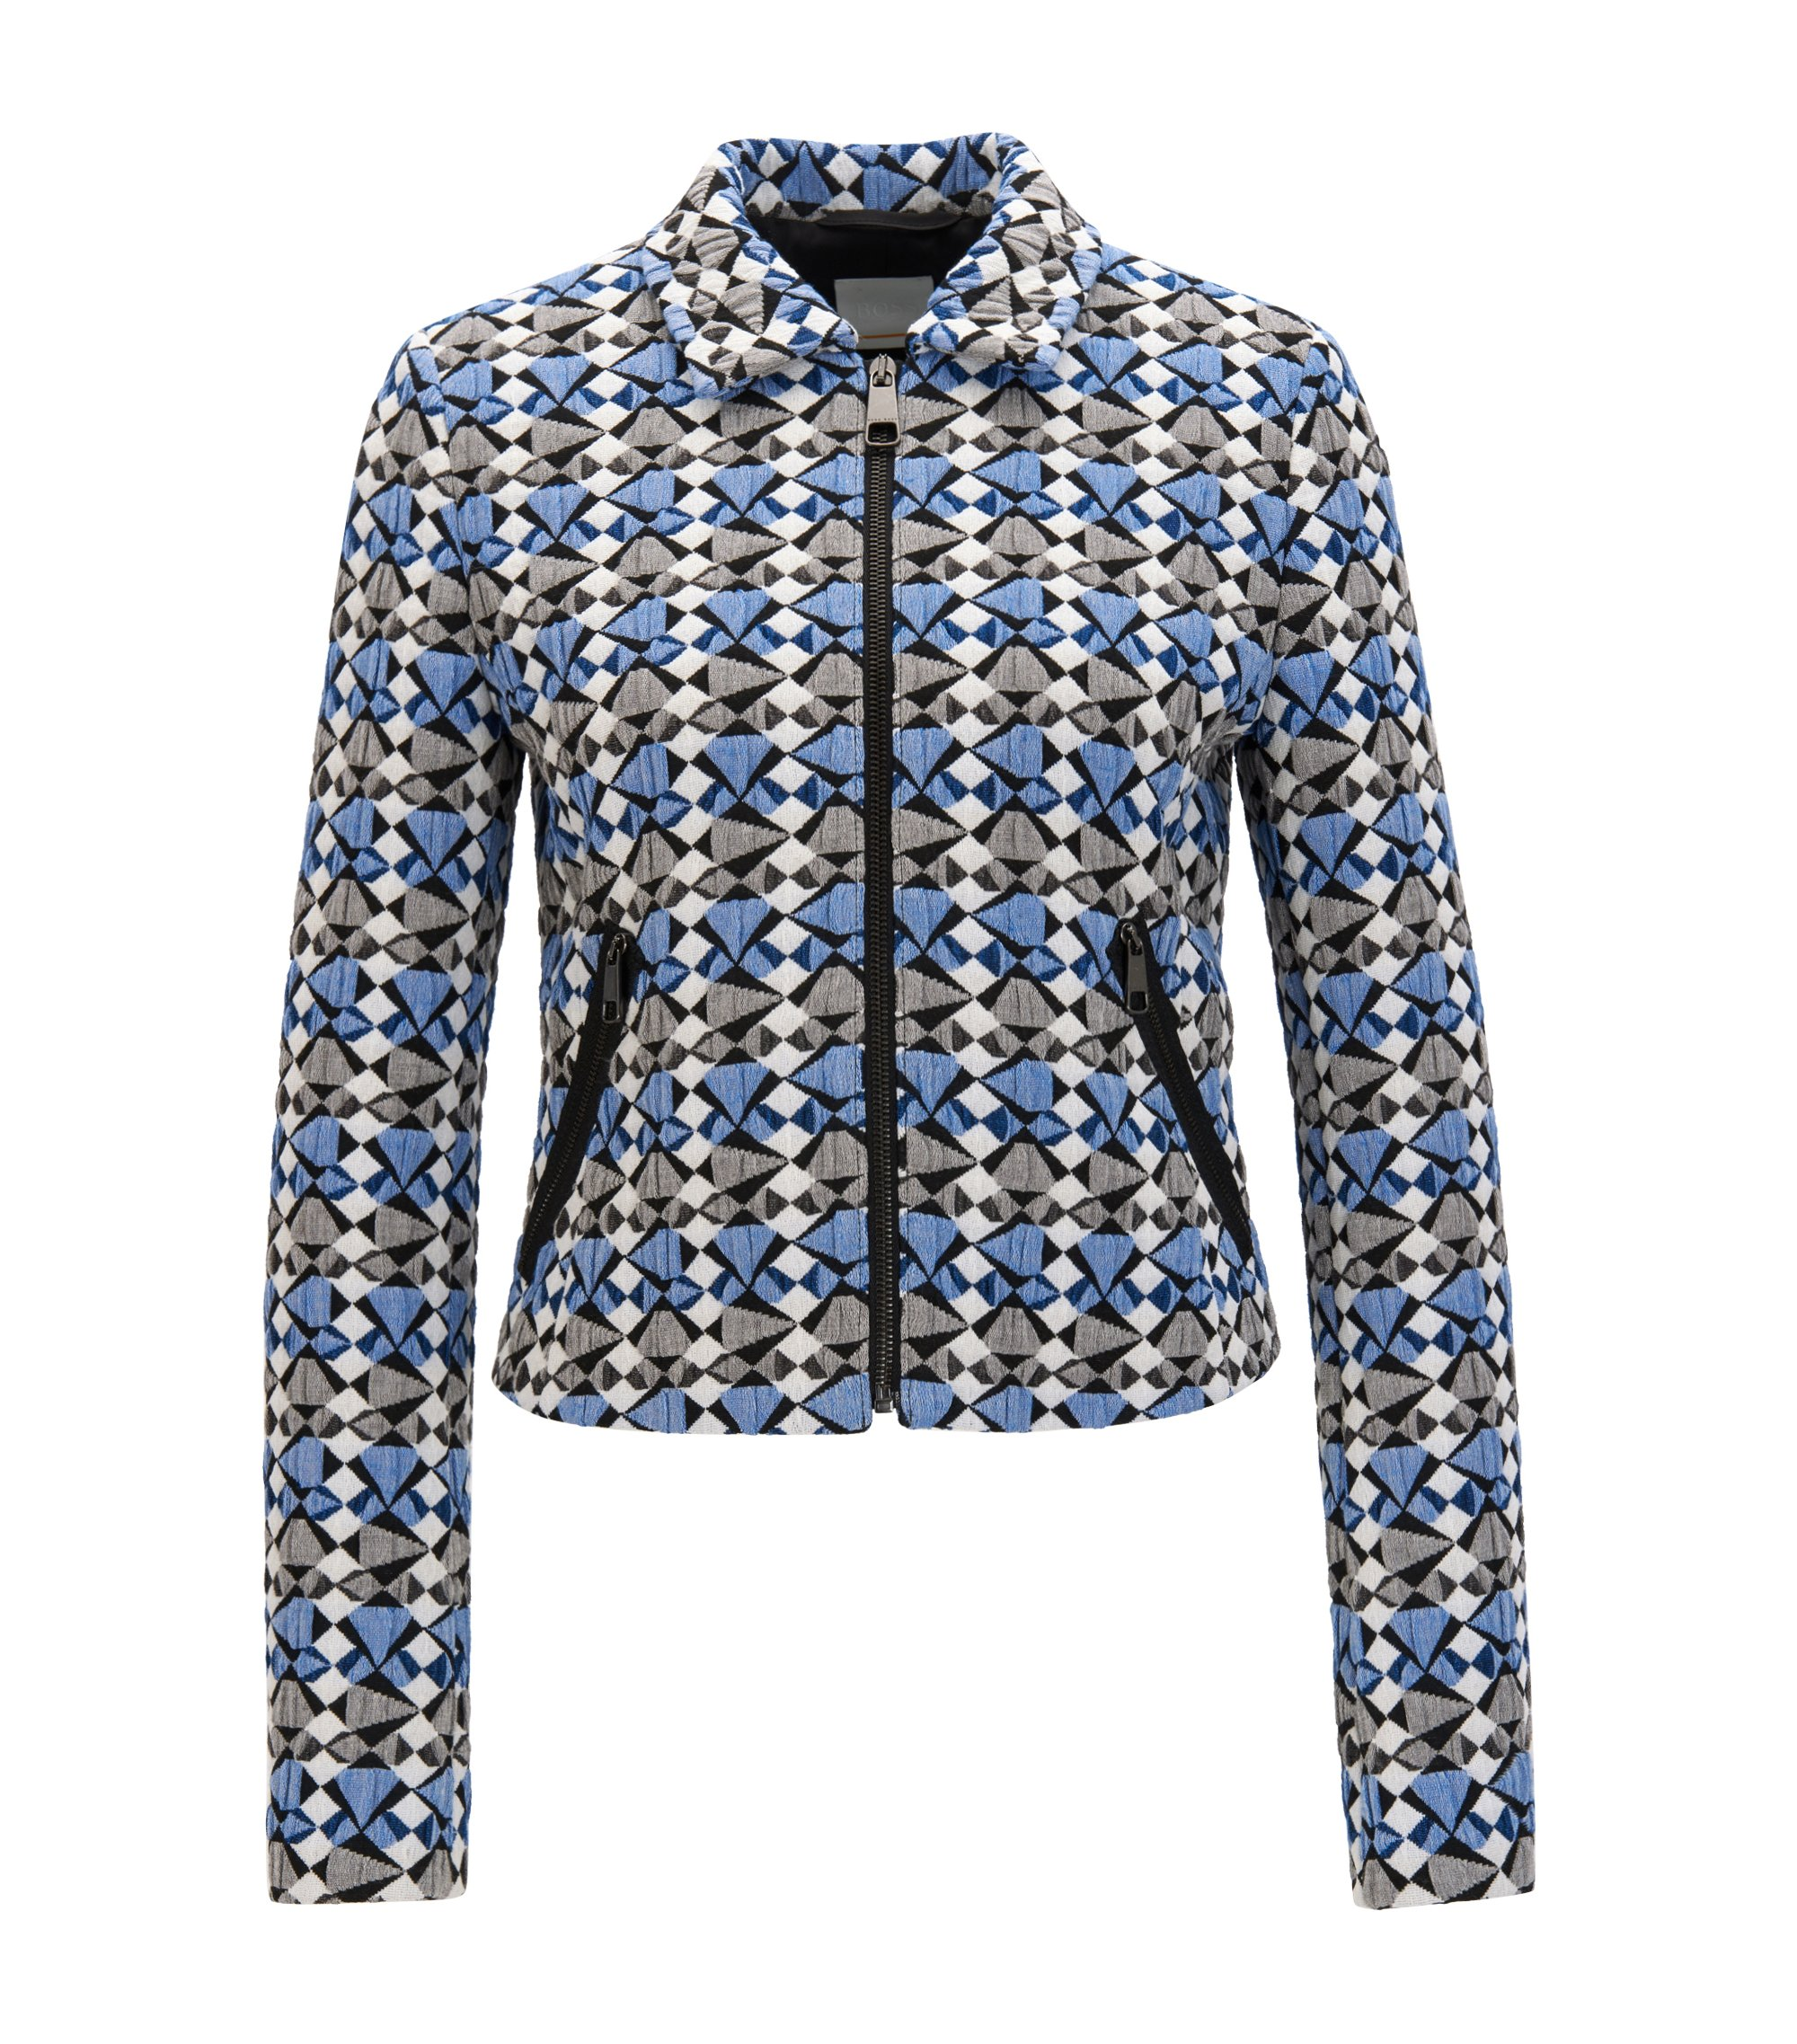 Veste Regular Fit en jacquard stretch multicolore, Fantaisie